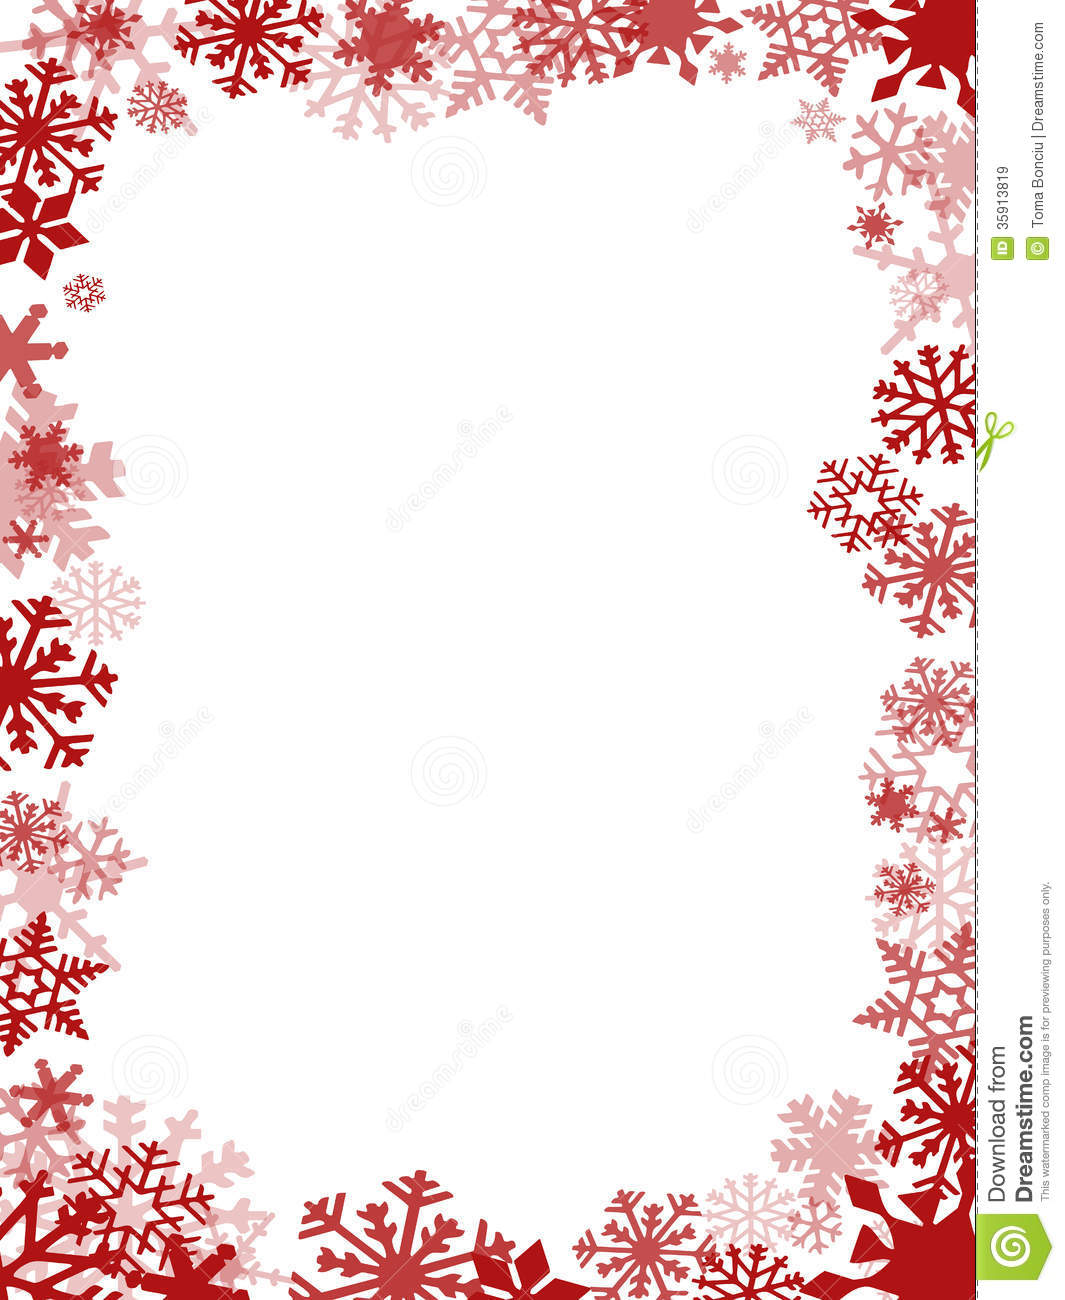 Red Christmas card frame stock illustration. Illustration of borders ...